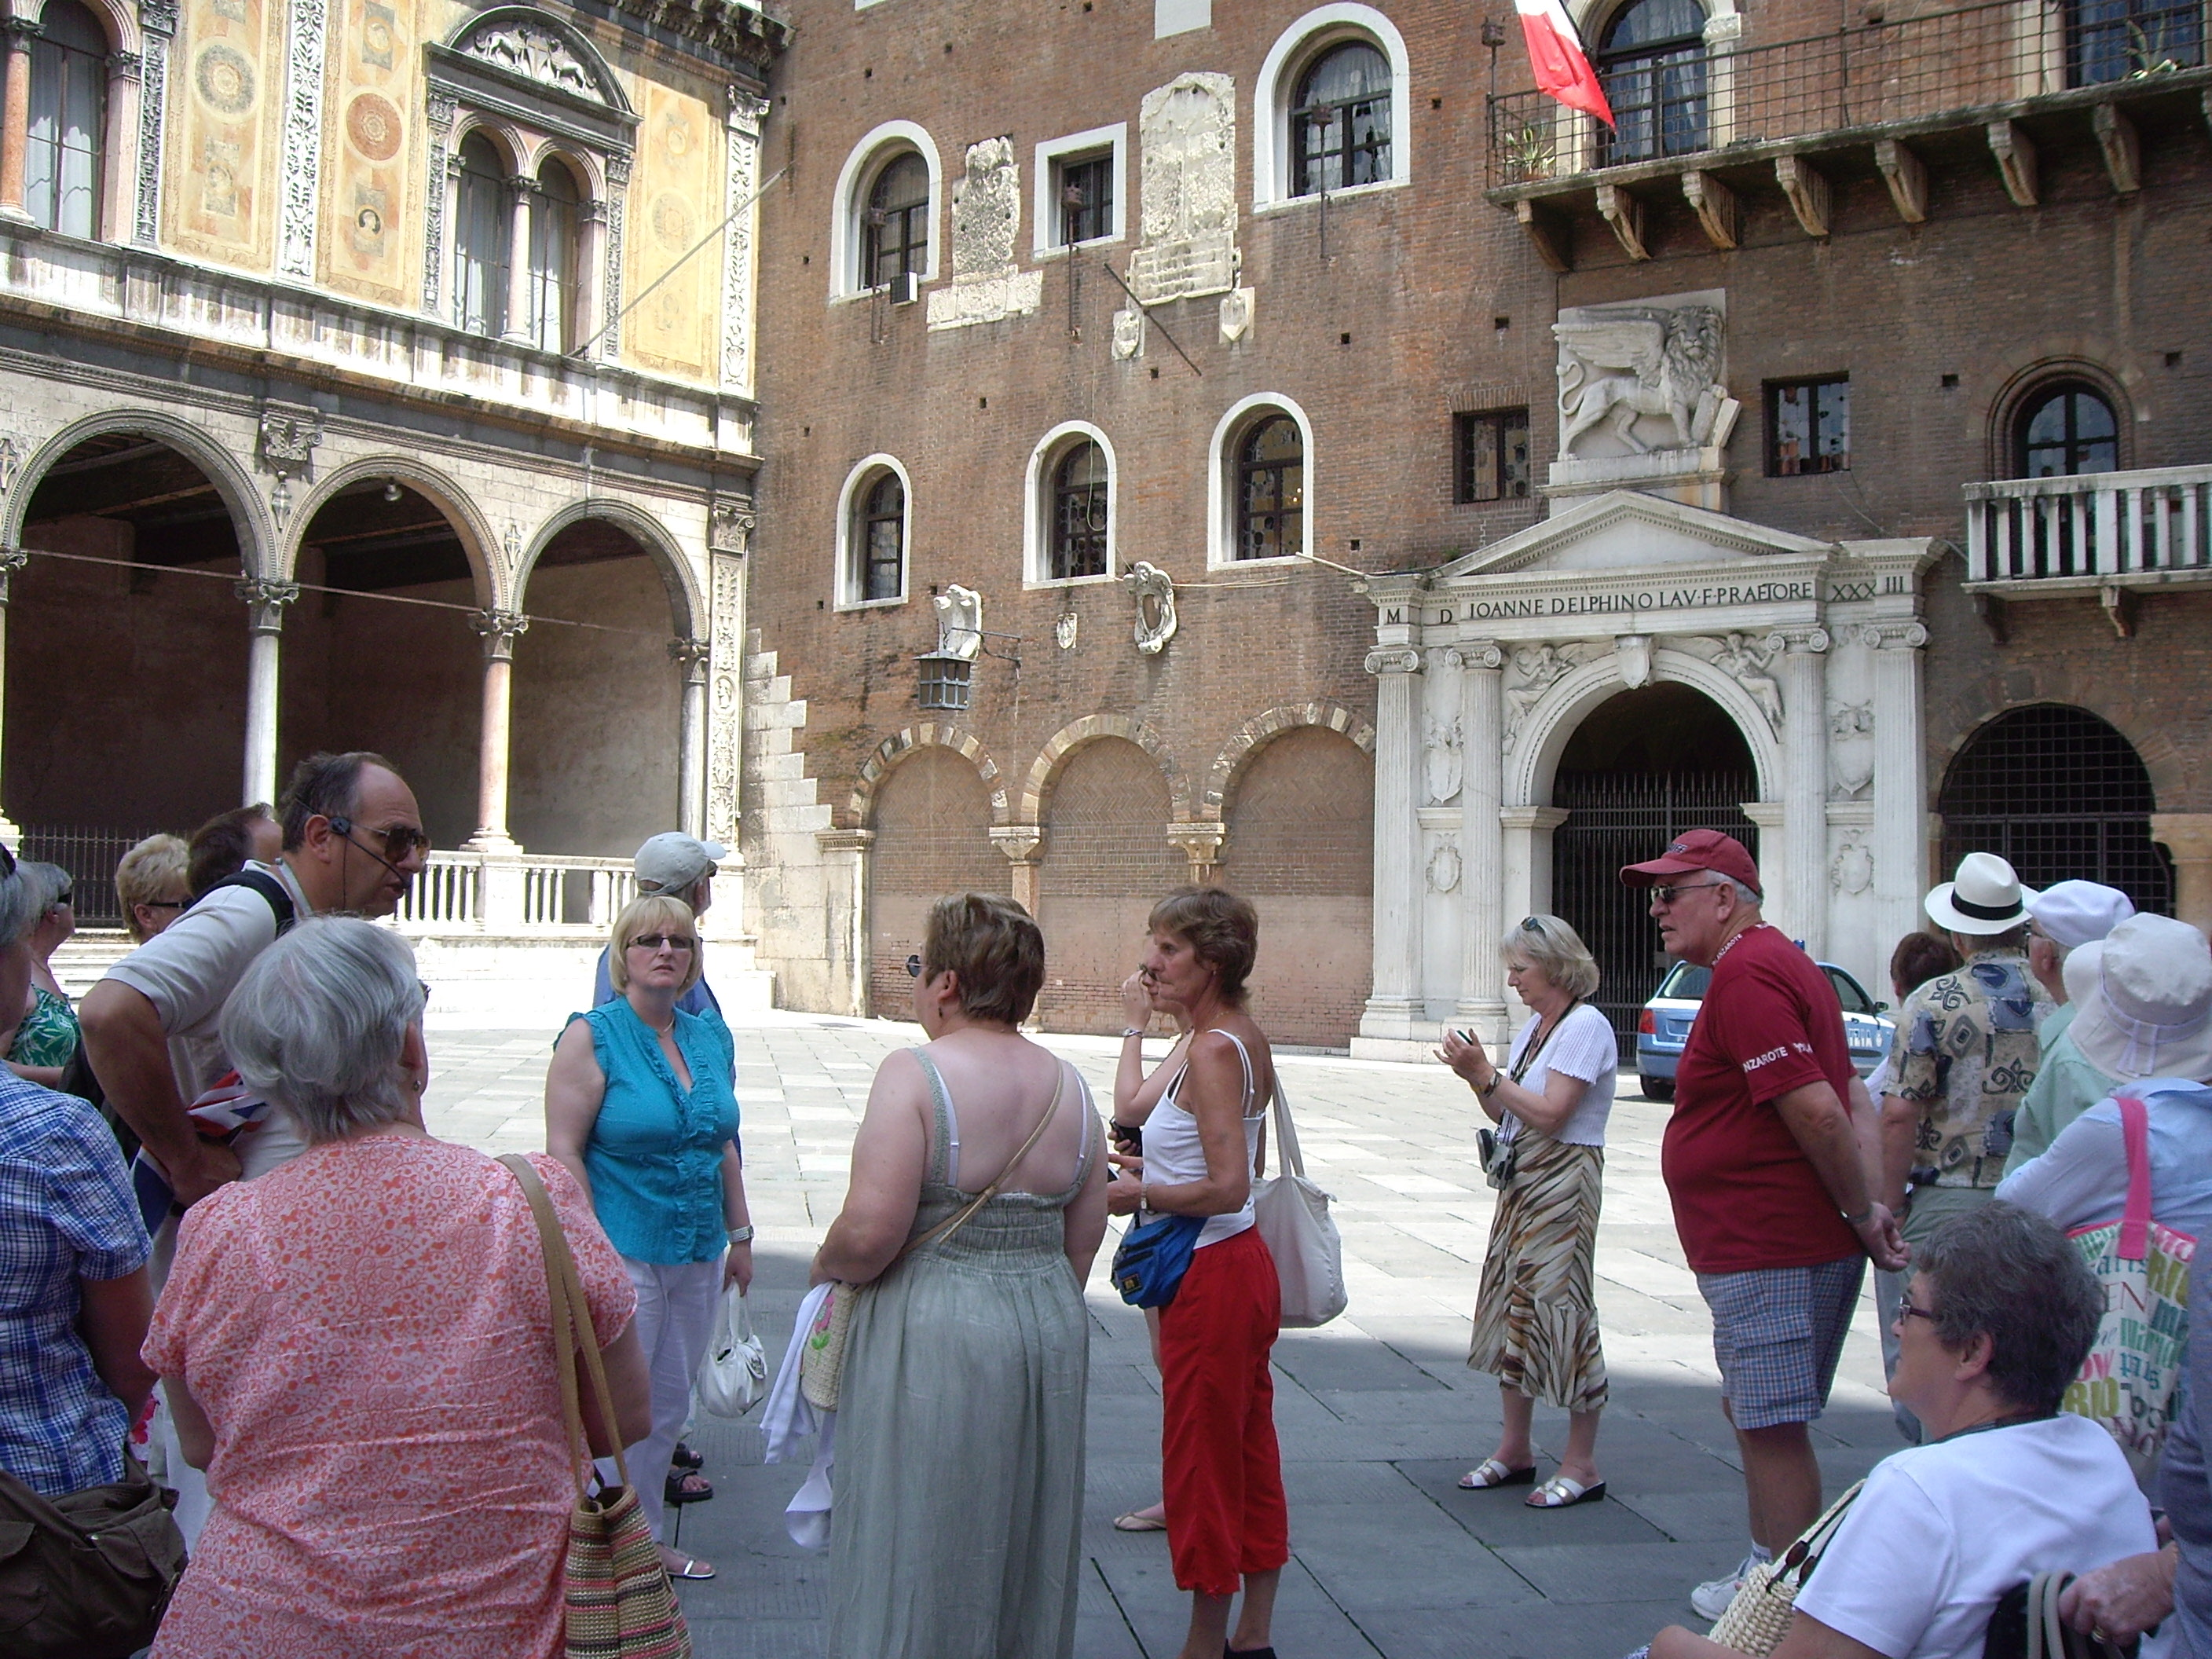 sightseengs in the old town and around Verona